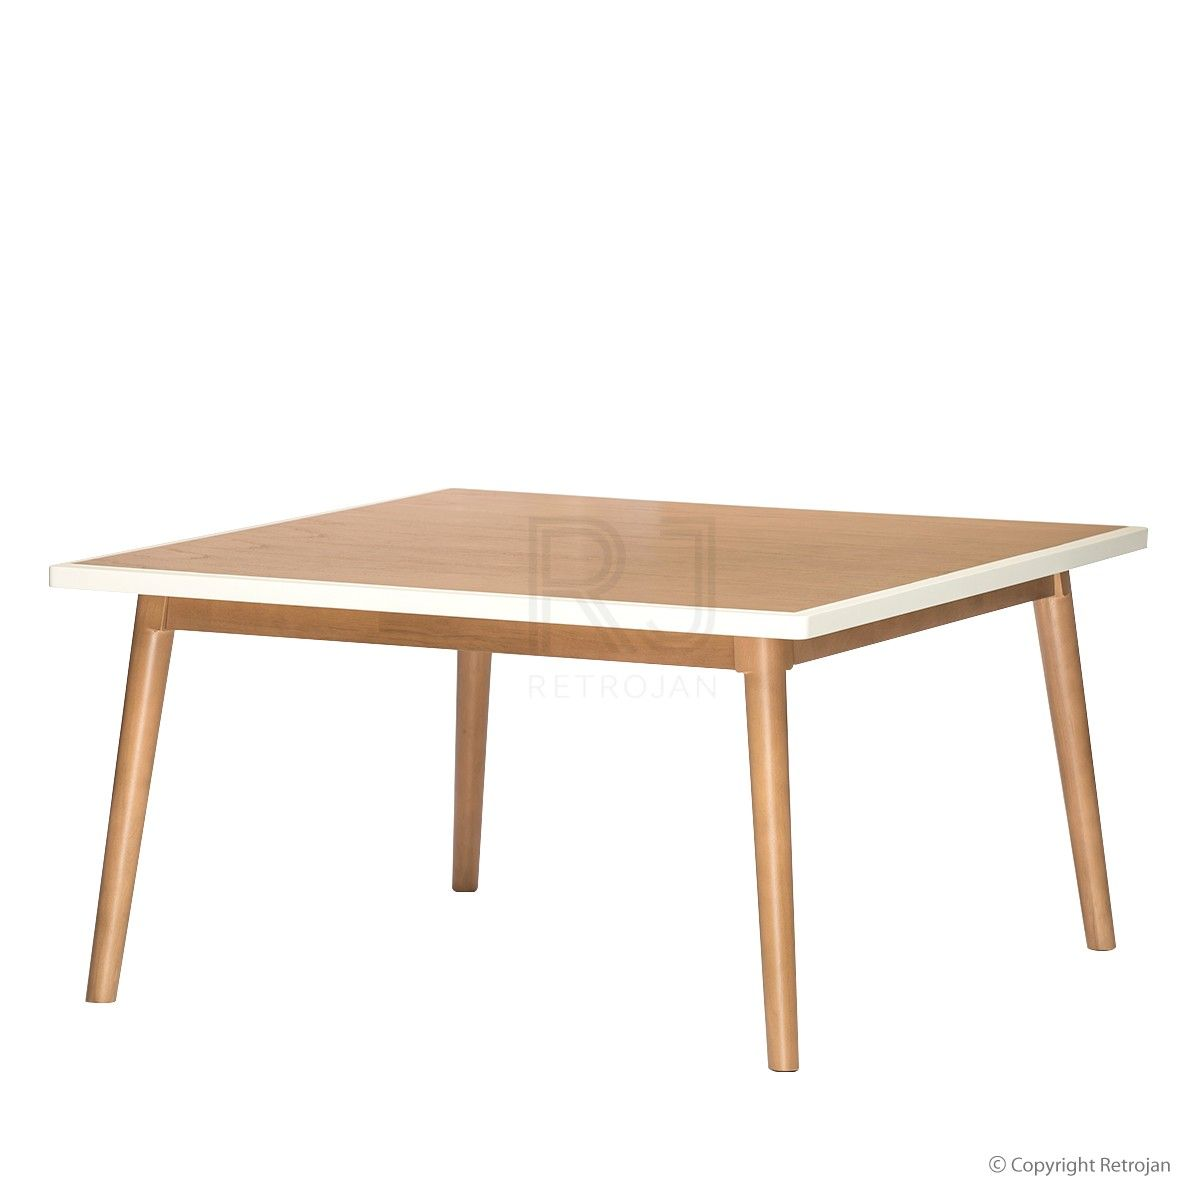 Nils danish style square coffee table 29900 scandi sensation nils danish style square coffee table 29900 geotapseo Gallery